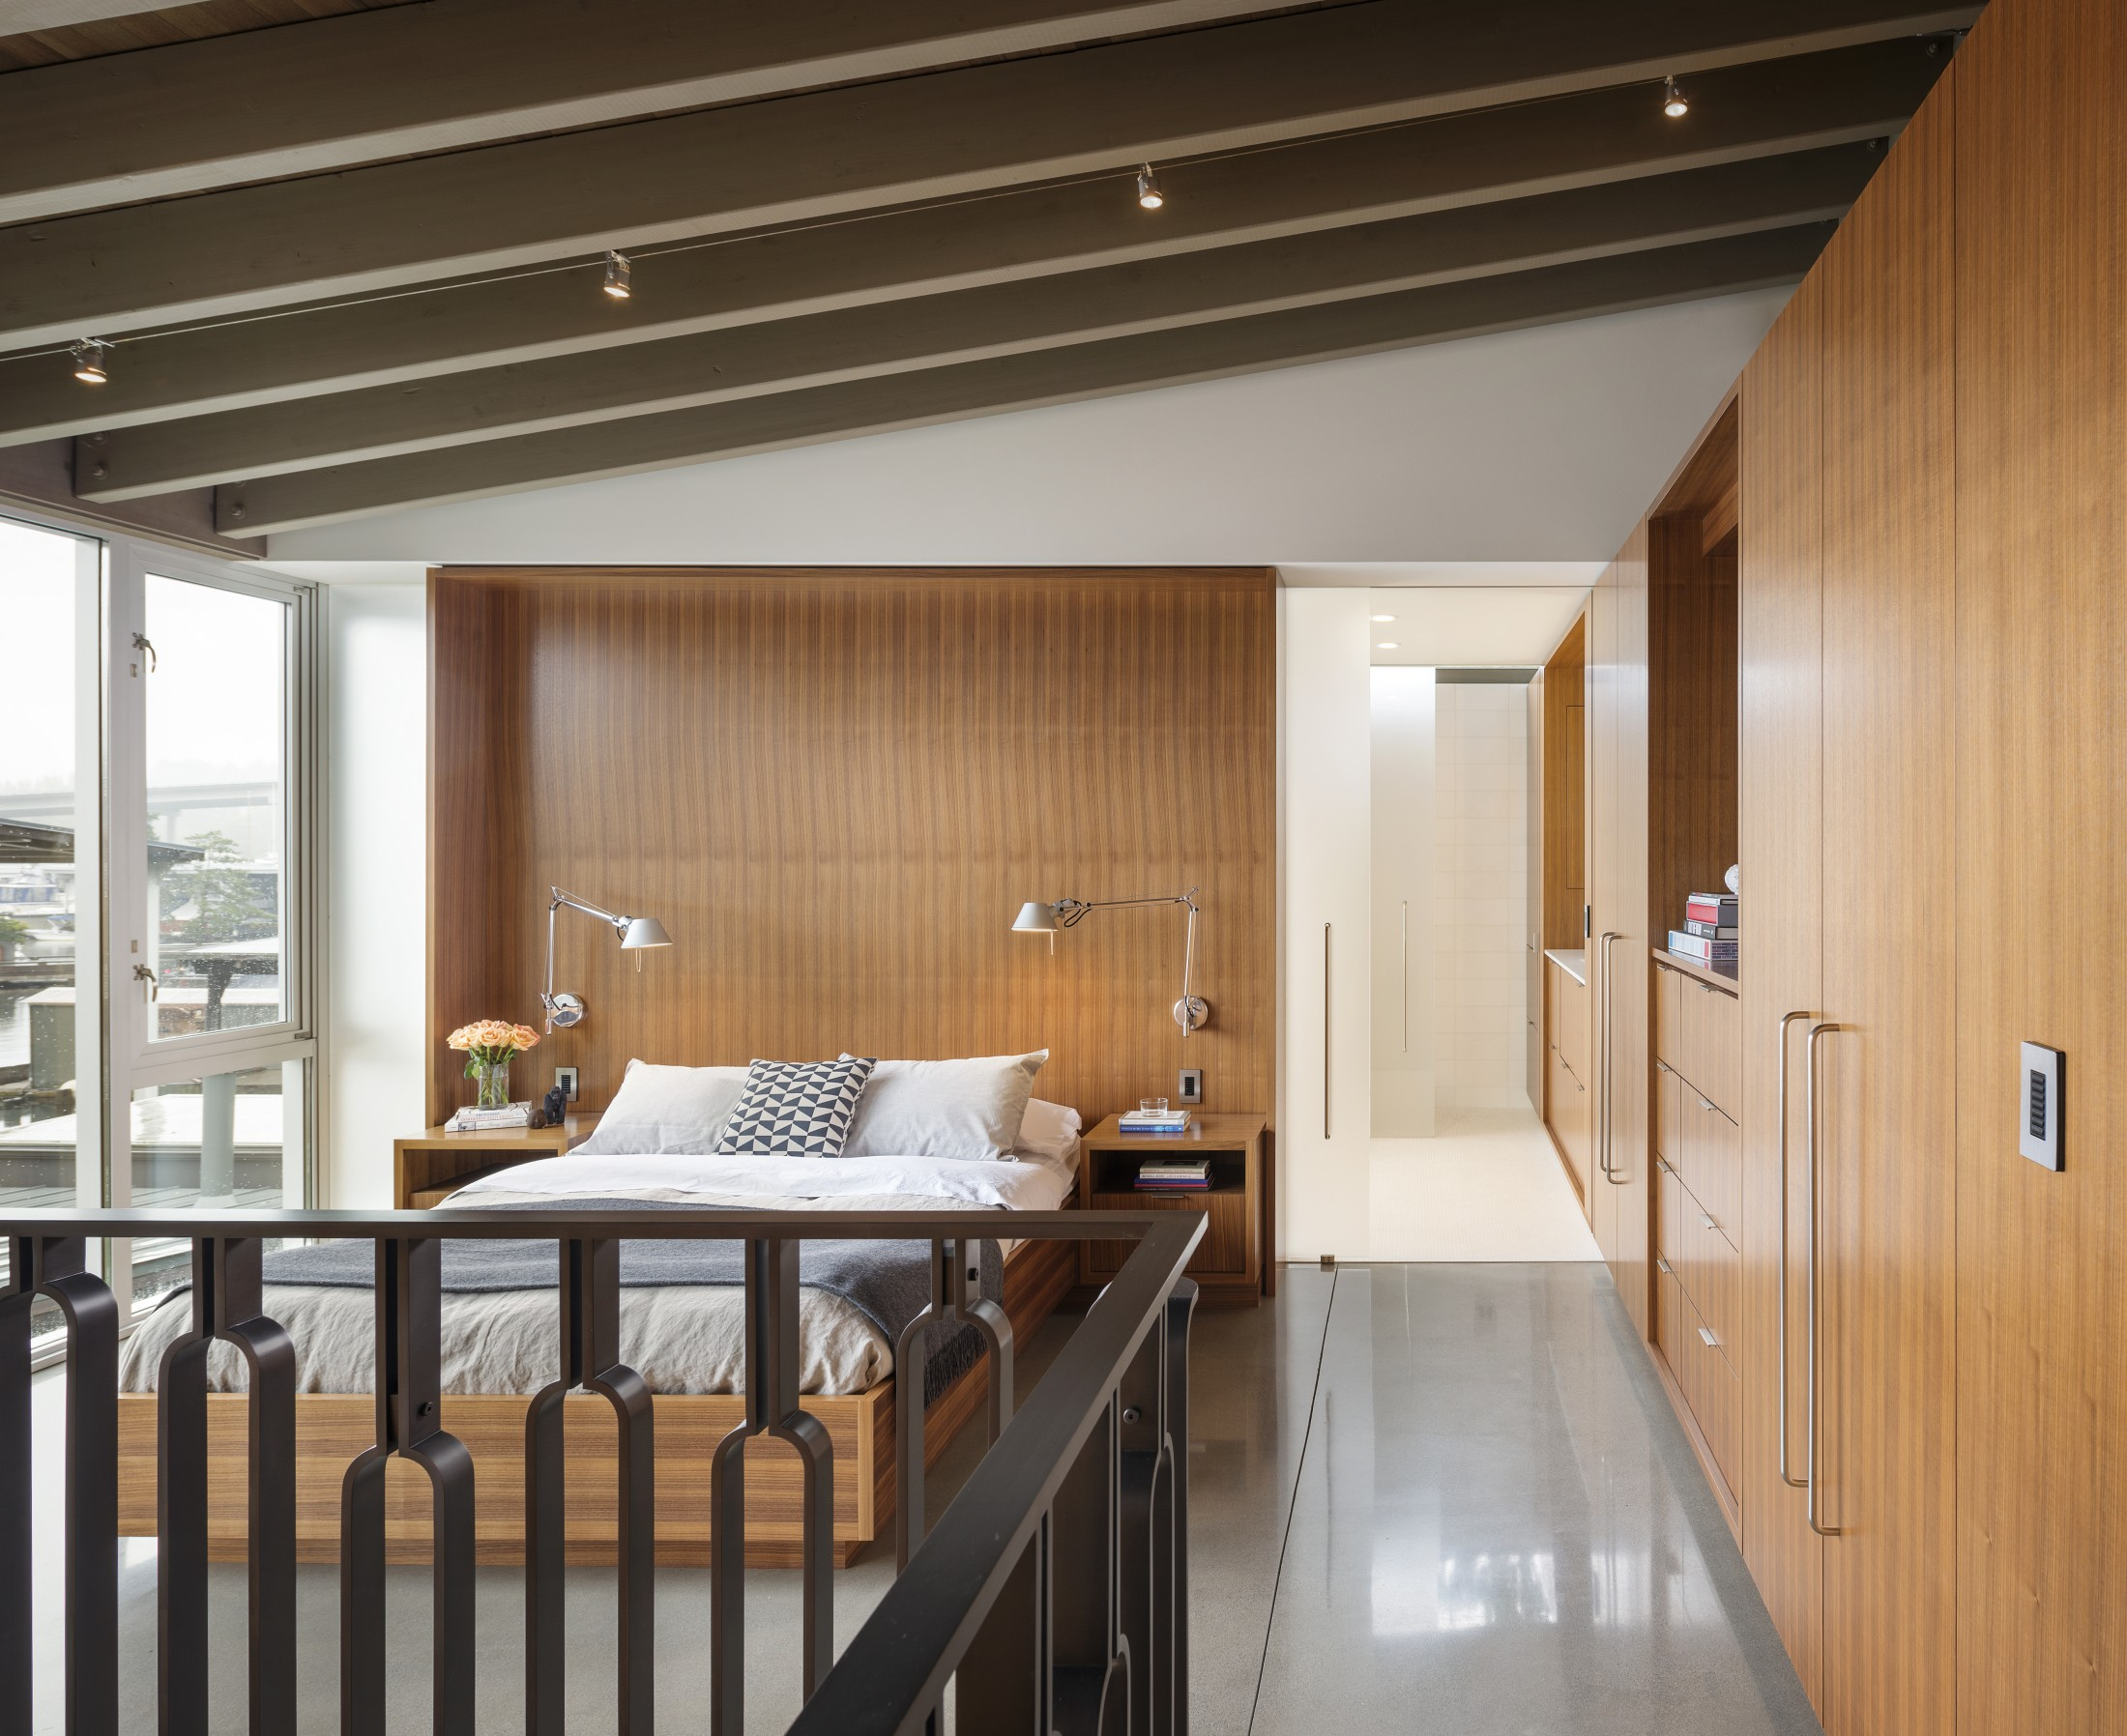 The master bedroom is clad with warm colored wood and there's a glazed wall to catch the views